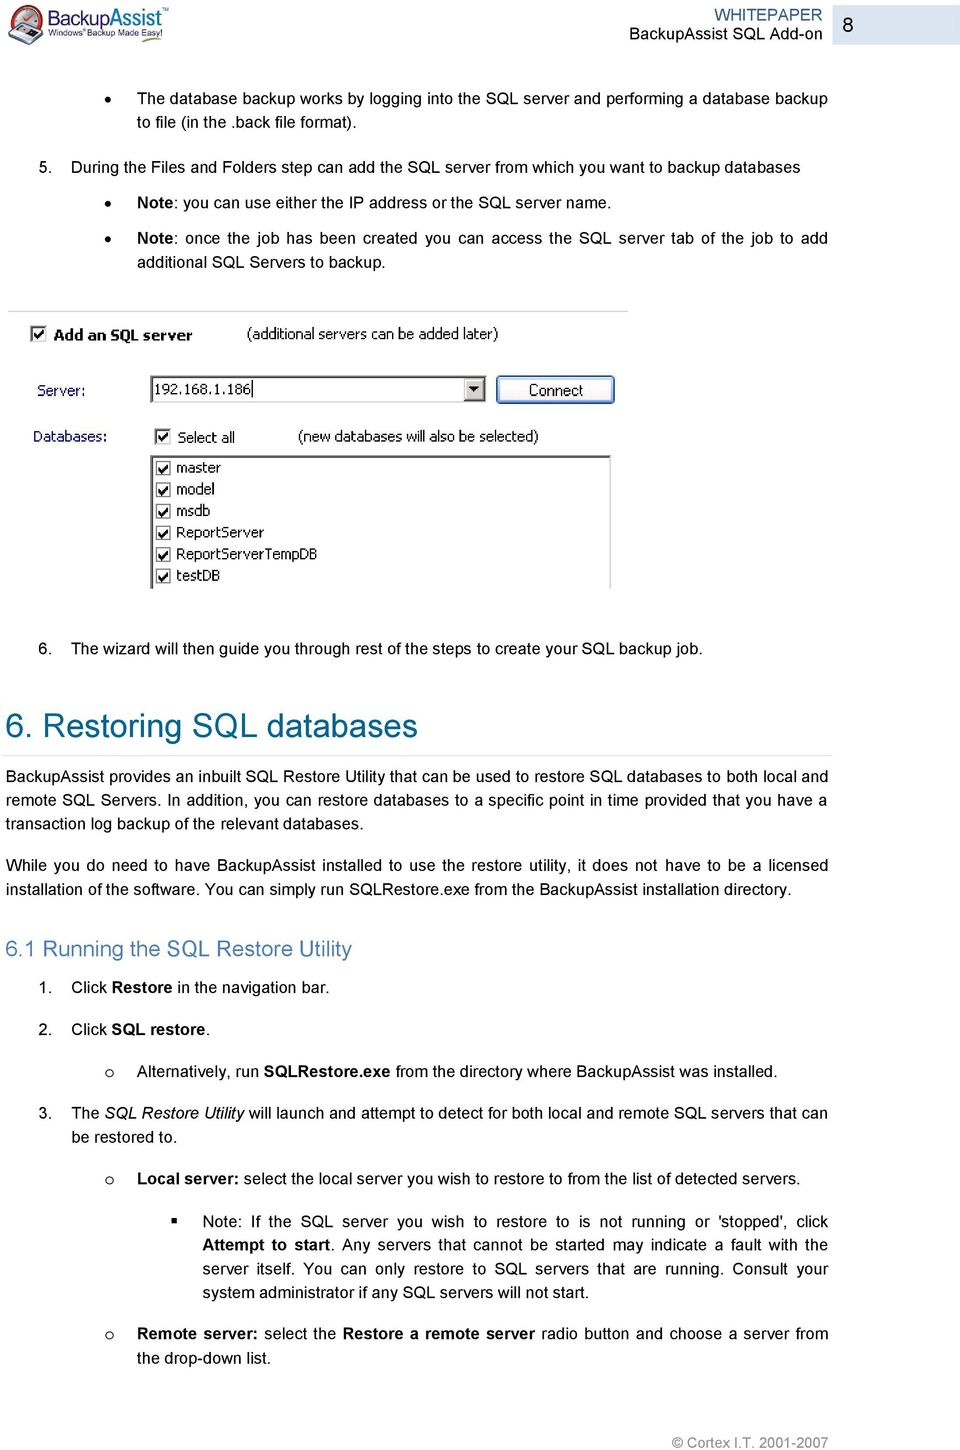 Nte: nce the jb has been created yu can access the SQL server tab f the jb t add additinal SQL Servers t backup. 6.